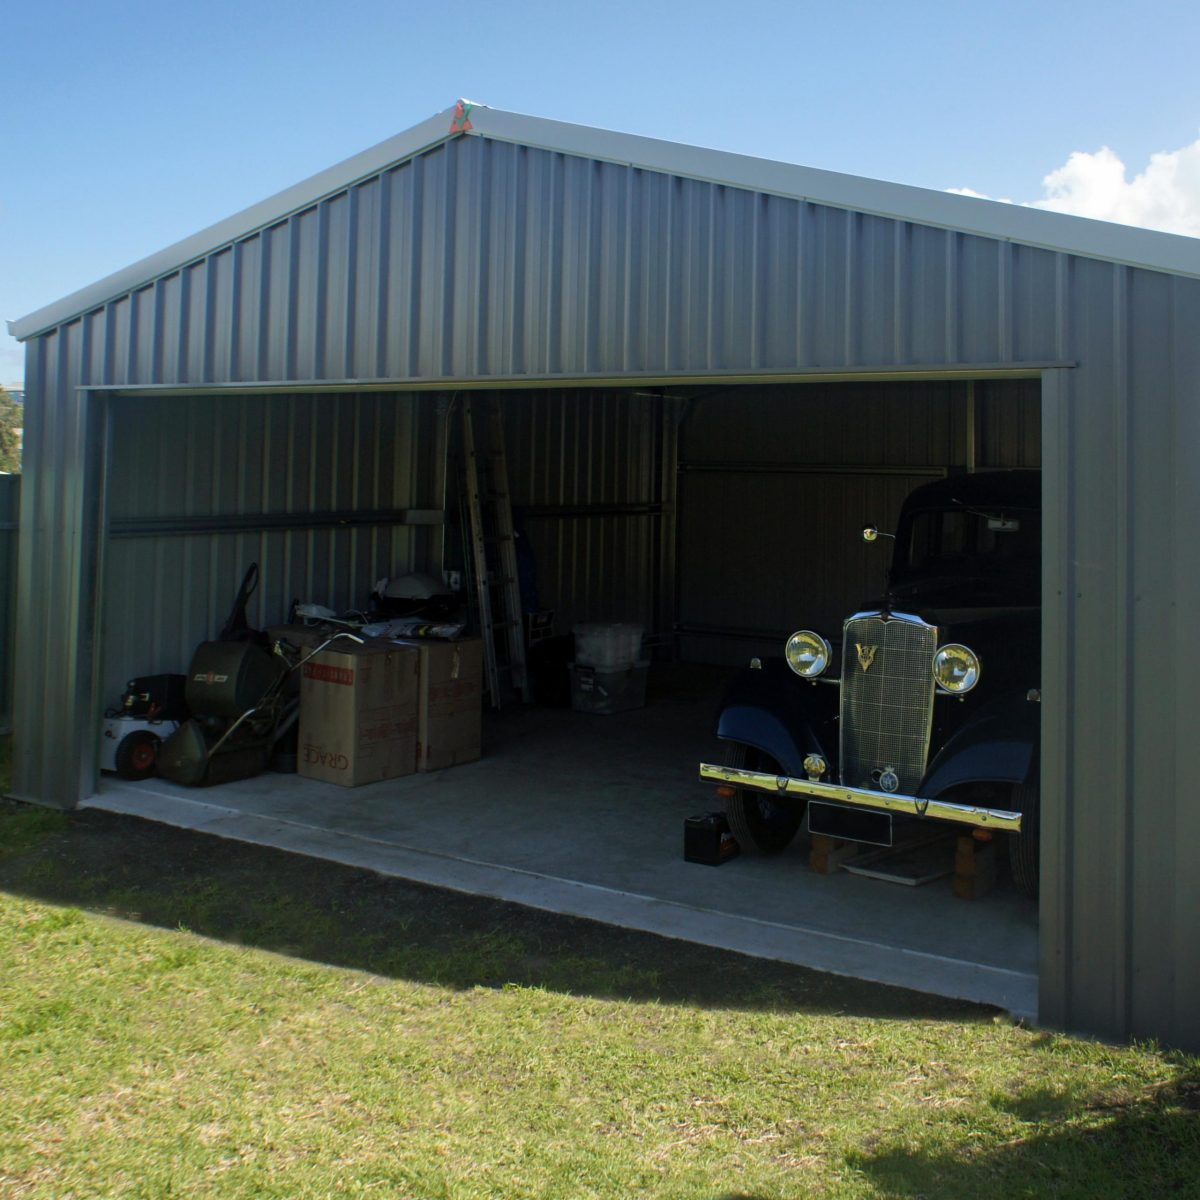 A classic shed for a classic car!